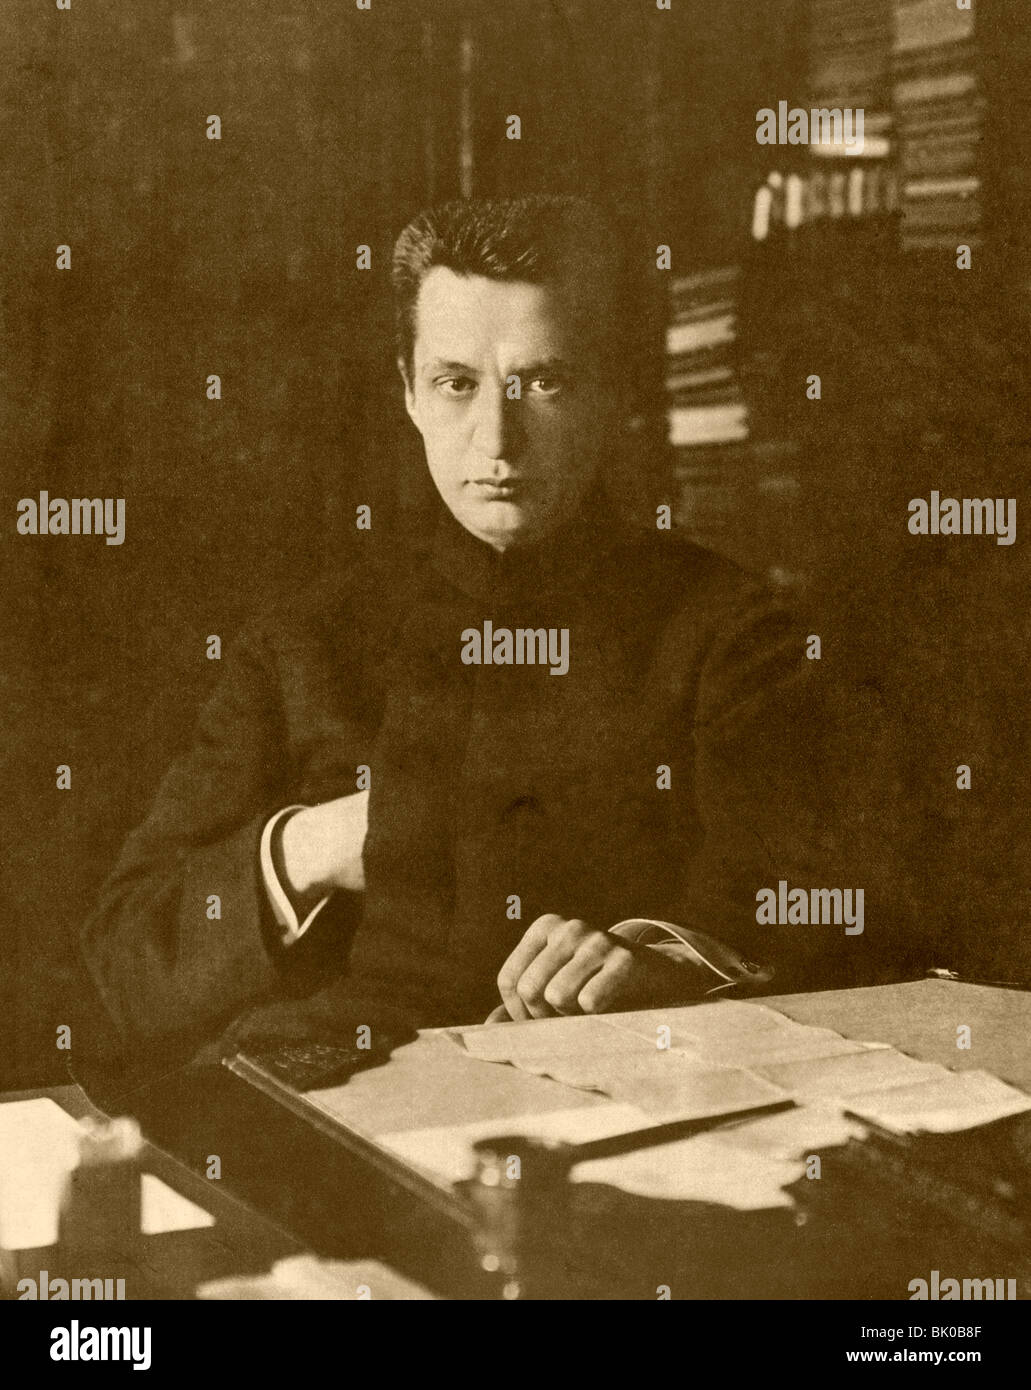 Alexandre Fiodorovitch Kerensky 1881-1970. Homme politique russe. Photo Stock